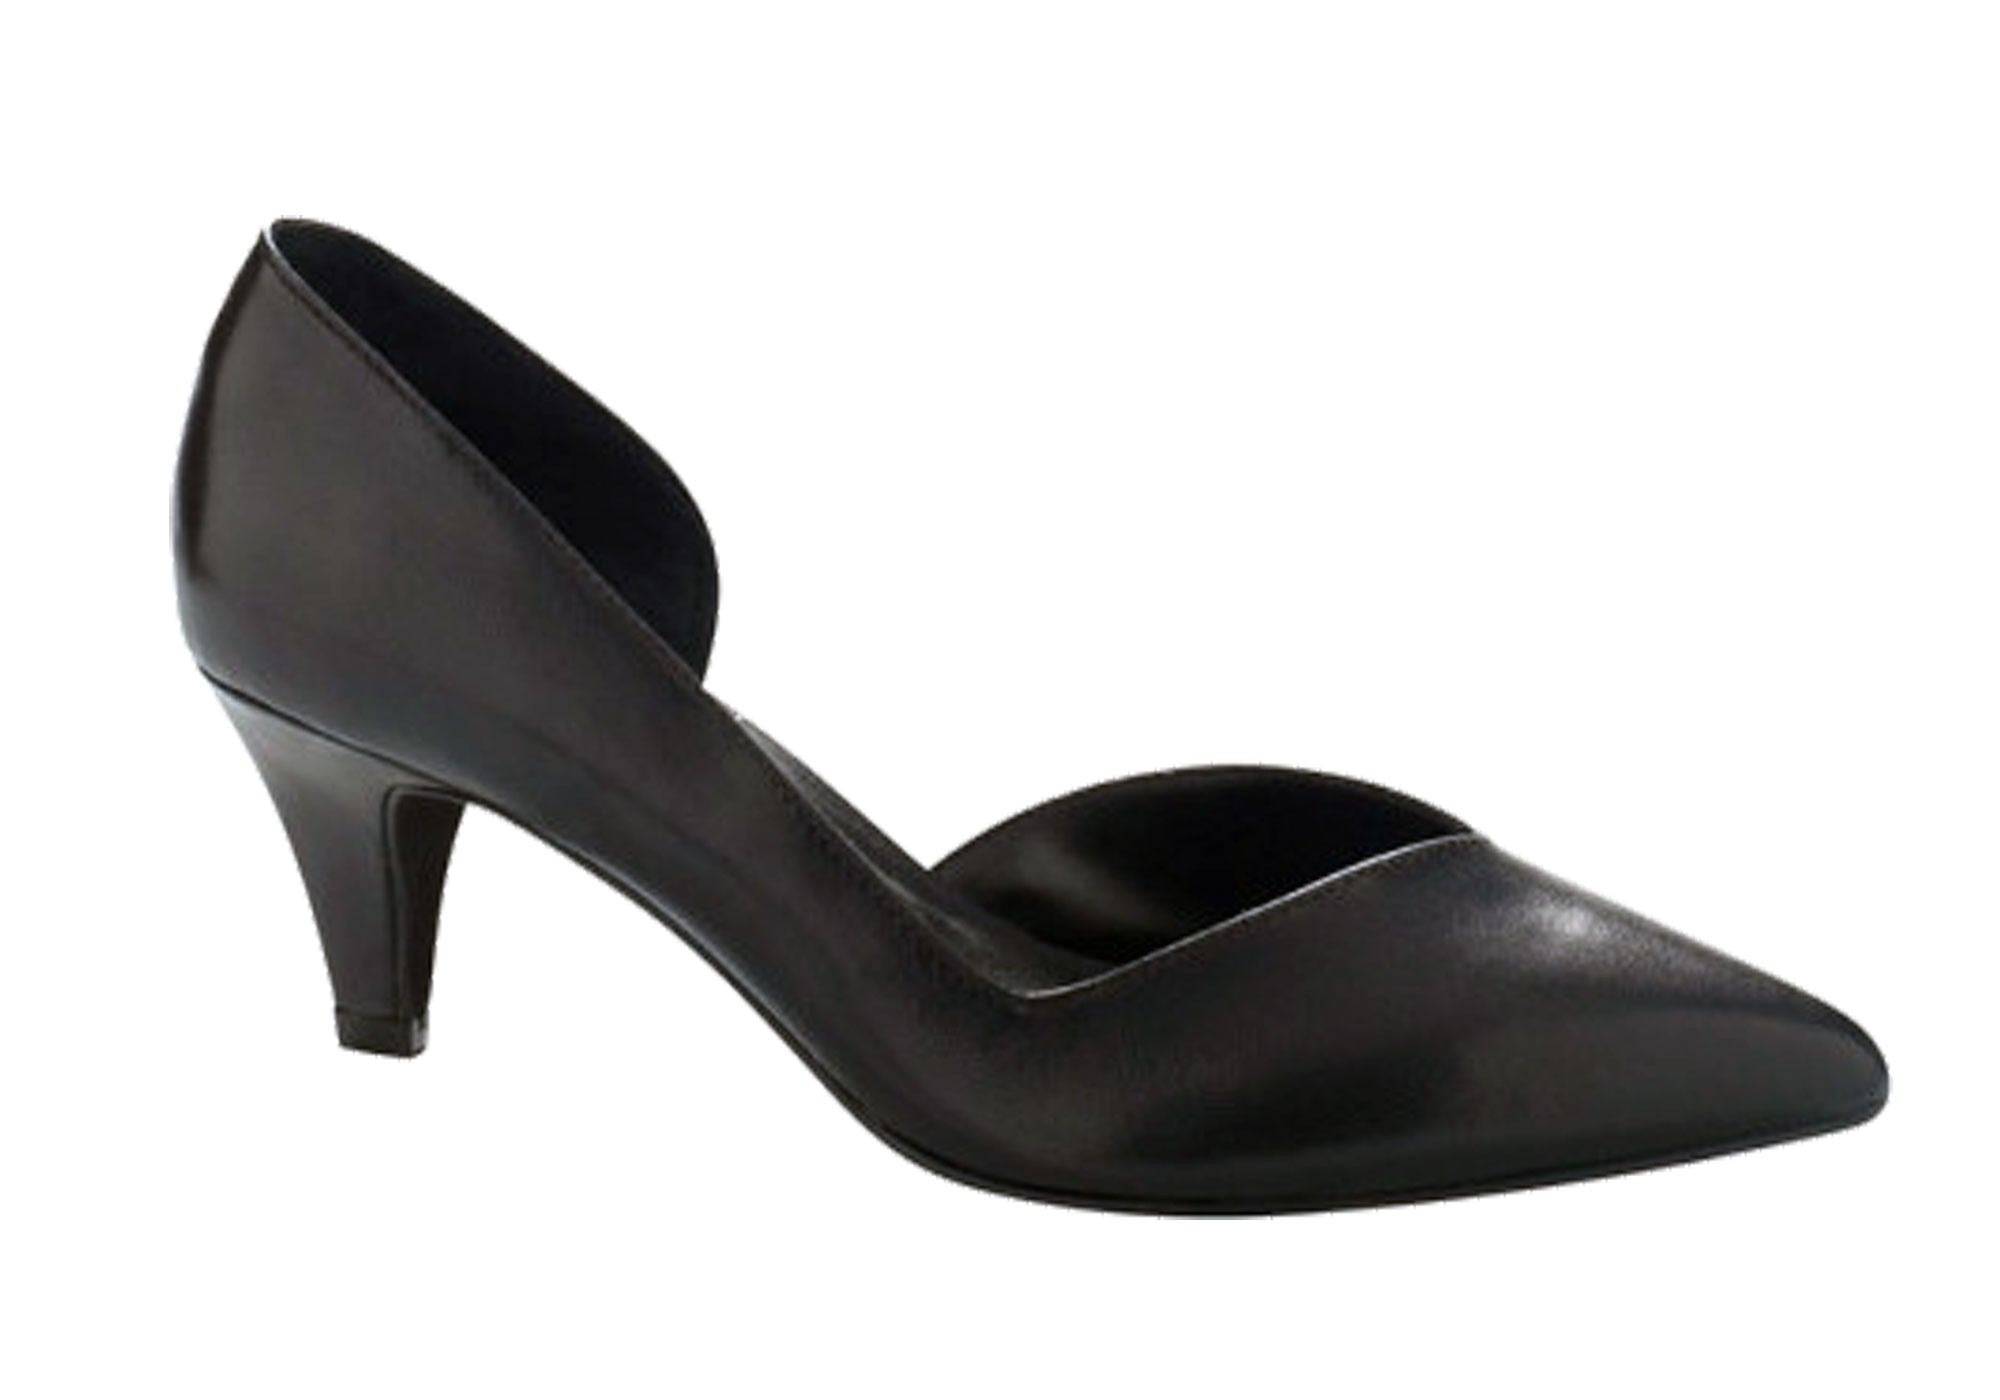 Rmk Zimmie Womens Leather Medium Heel Pumps